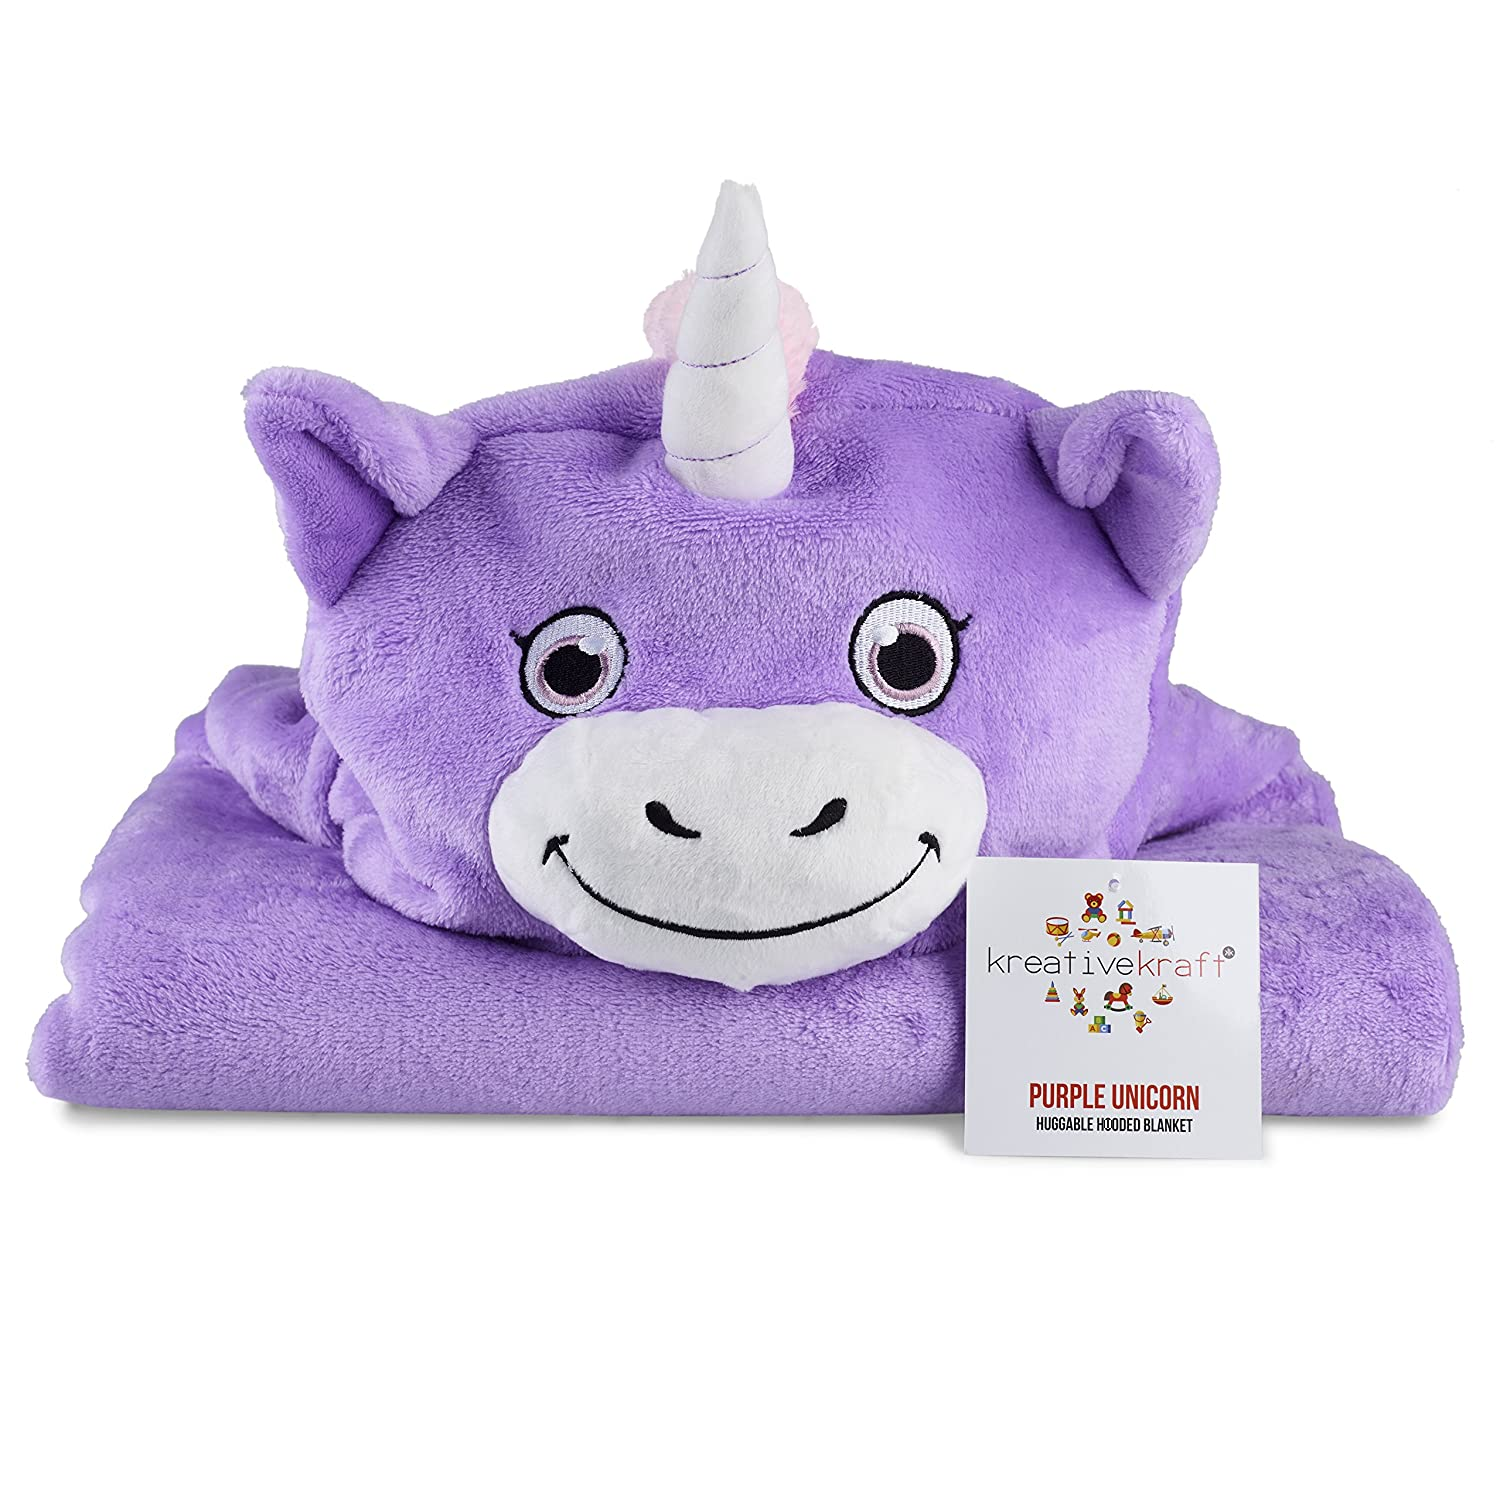 Kids Huggable Hooded Blanket – Plush Unicorn Blanket For Baby Boys & Baby Girls - Kids Animal Comfy Hoodie – Comfortable, Super Sot, Warm & Snug – Easy To Clean F&F Stores